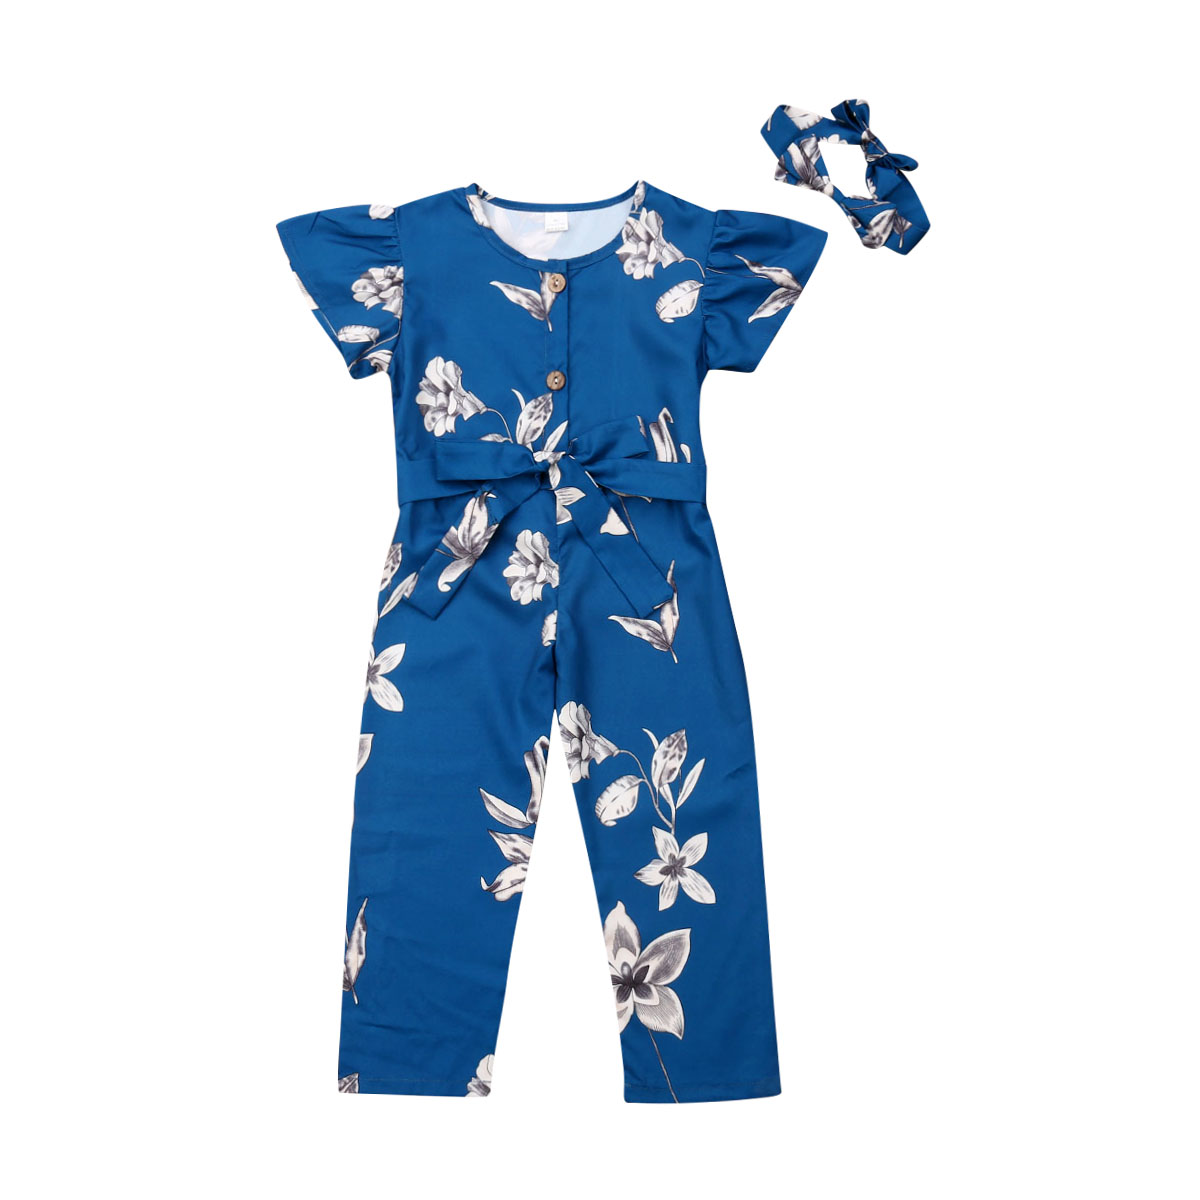 2-9Years Toddler Kid Baby Girl Clothes Ruffle Sleeve Floral Romper Jumpsuit Long Trousers Playsuit Overalls Outfit Clothing